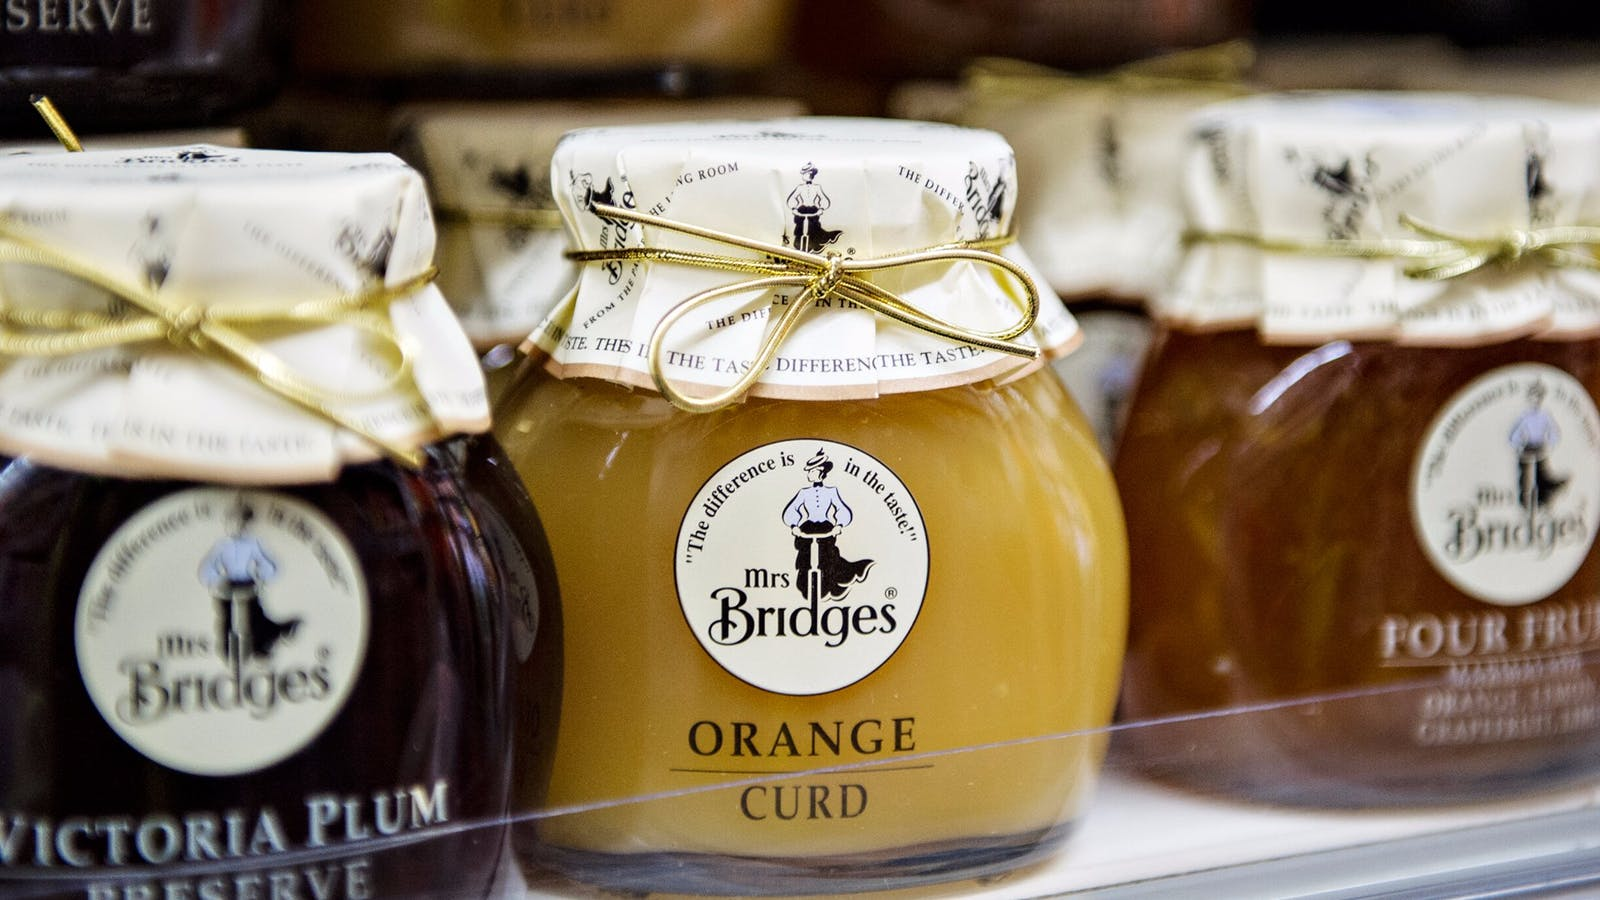 Mrs Bridges Organge Curd from the Meat, Fish & Deli Hall